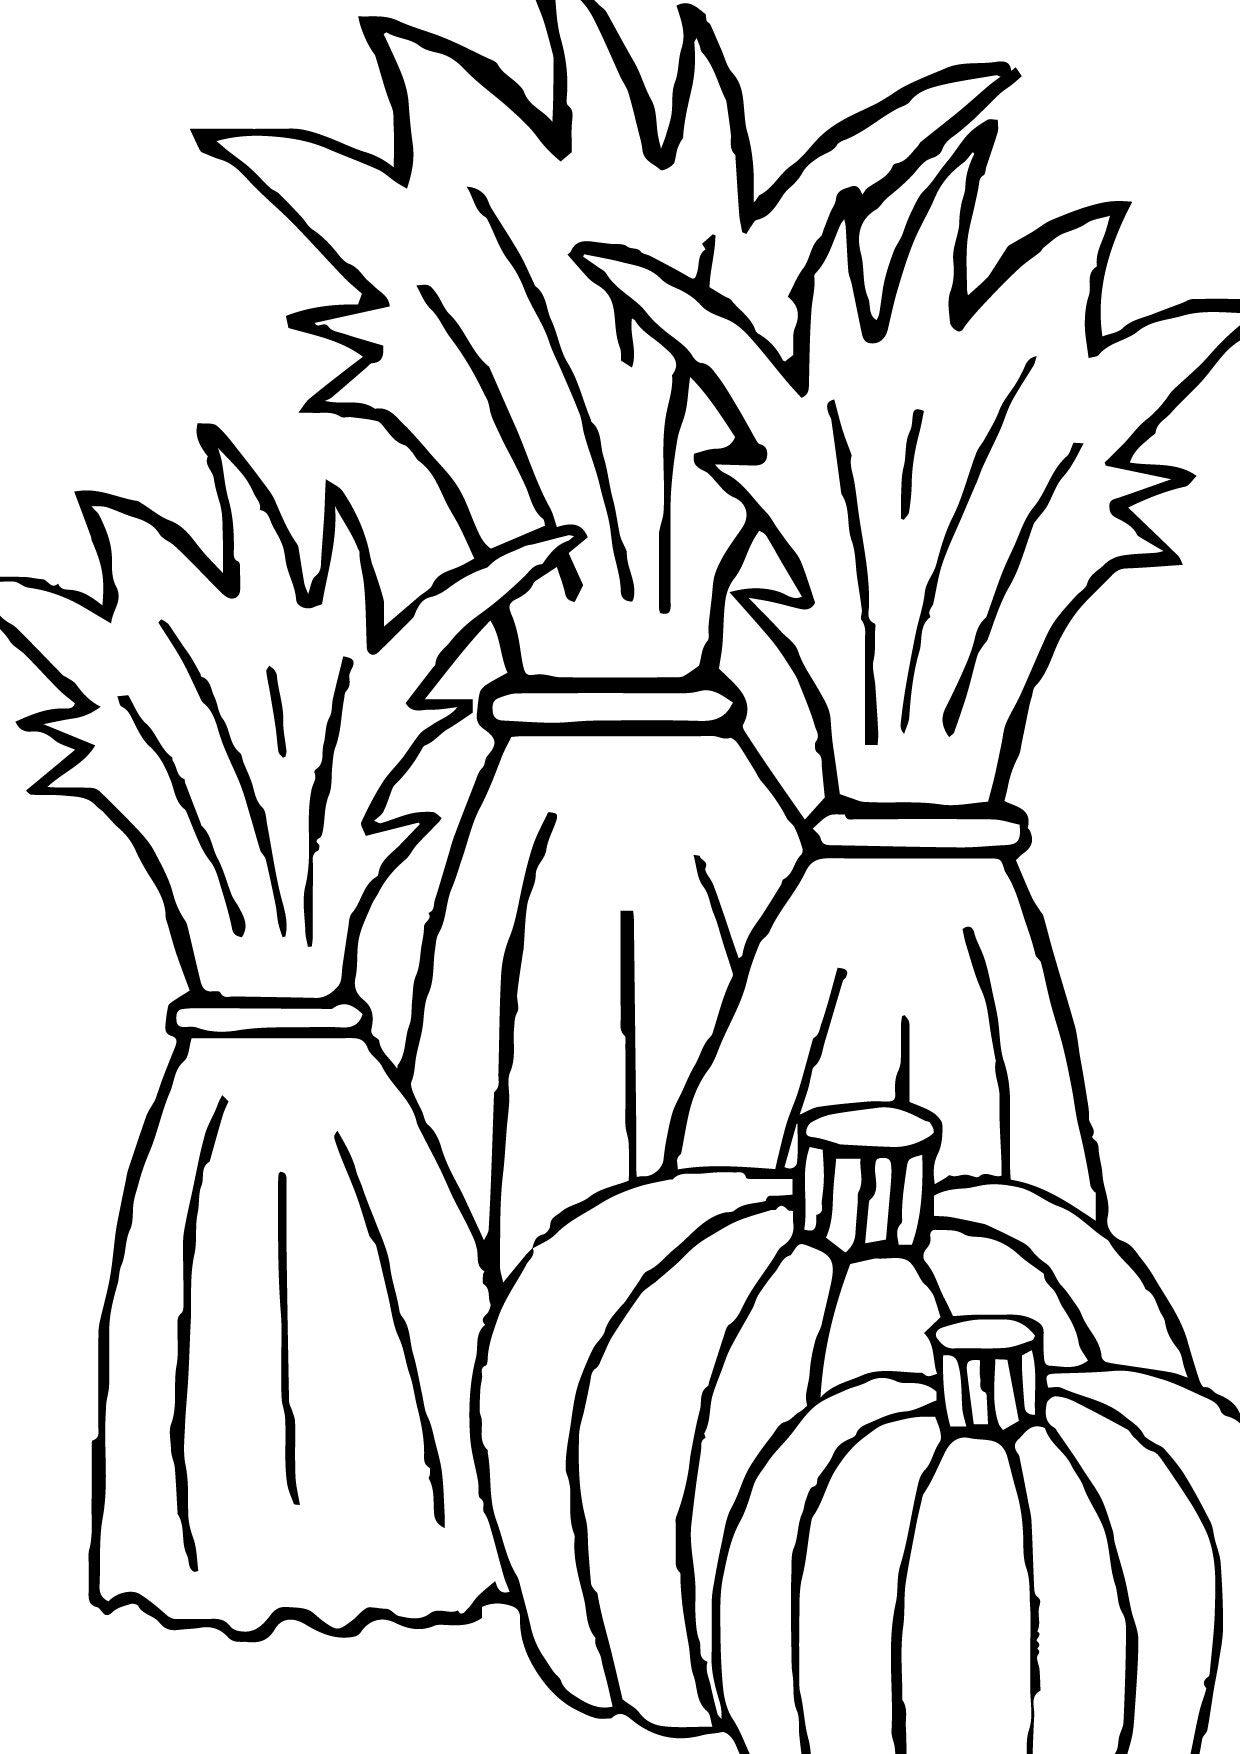 Awesome Corn Stalk Coloring Page 08 09